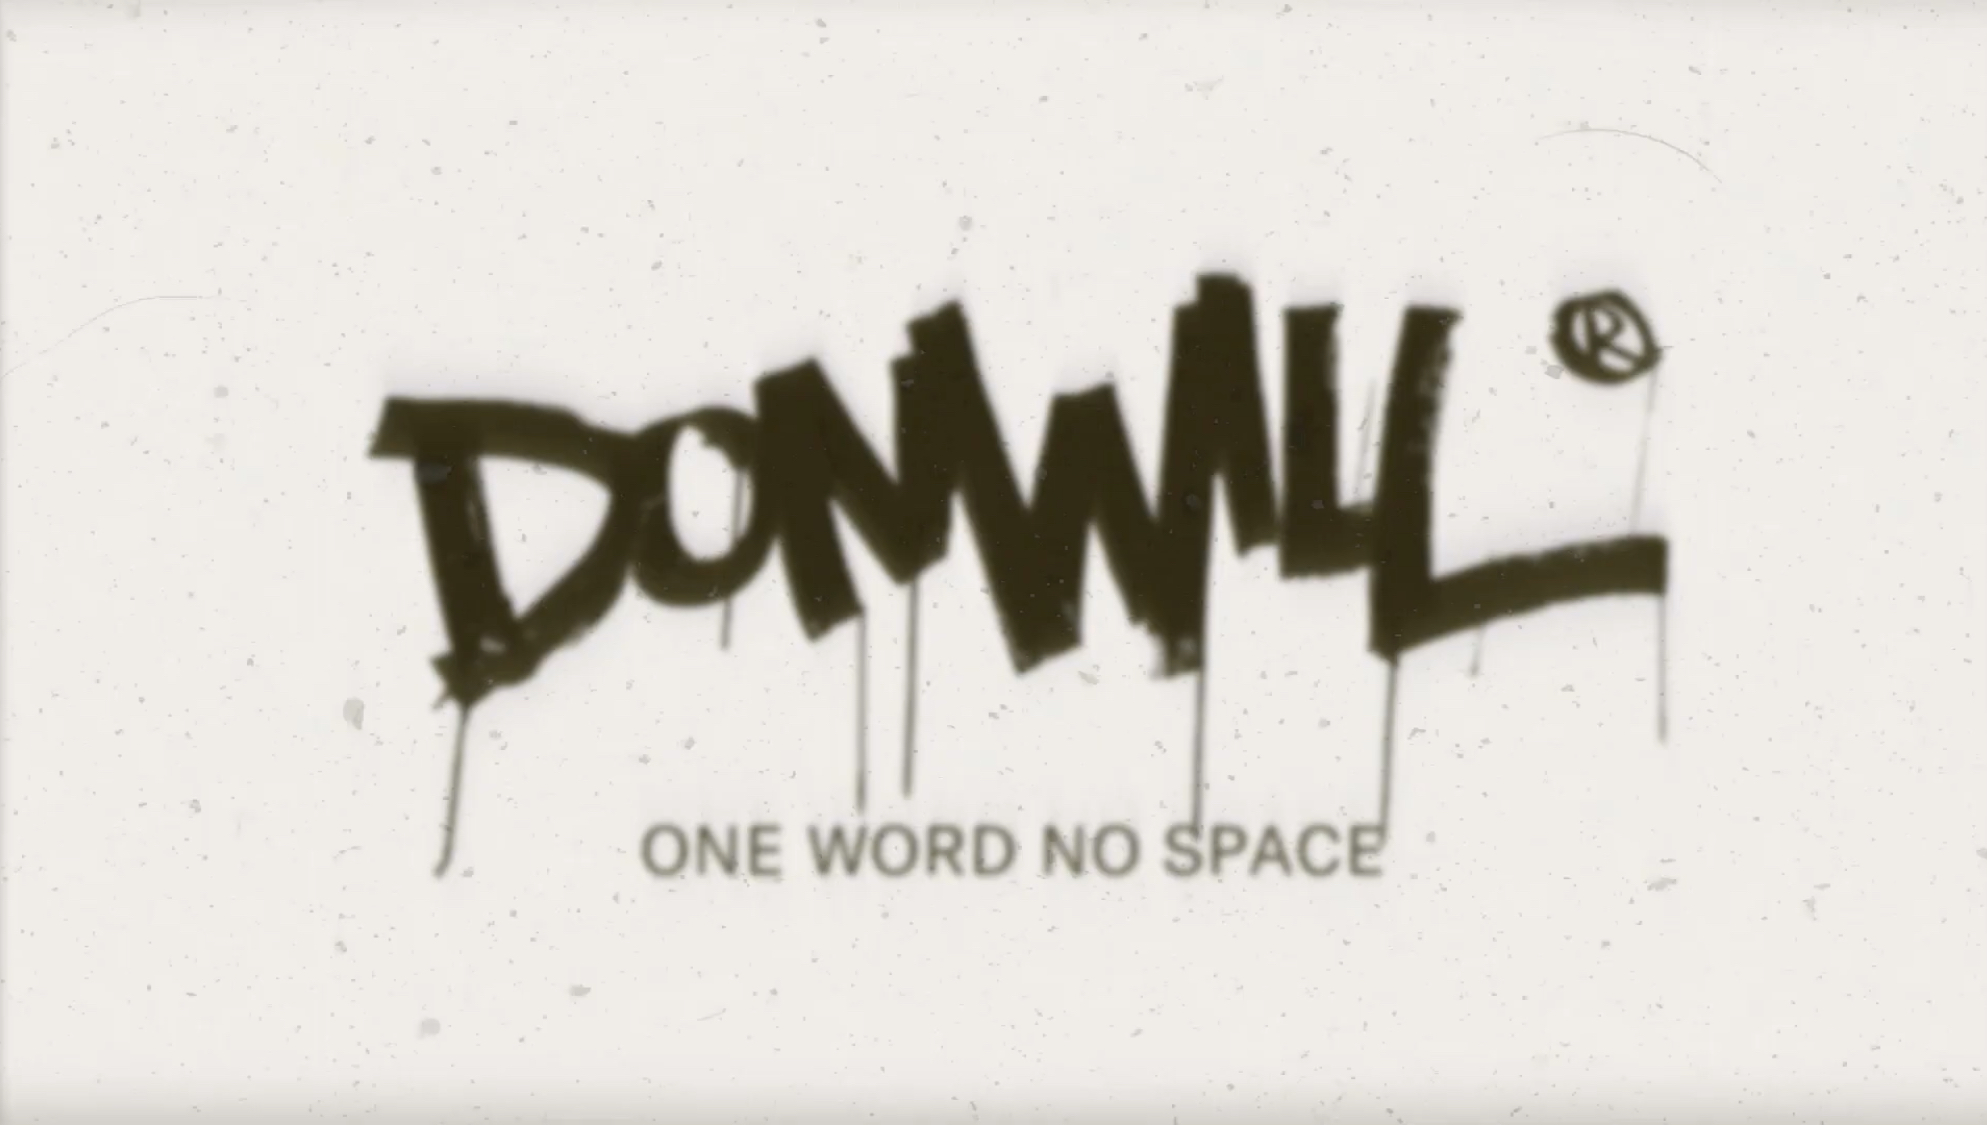 Donwill - One Word No Space | Video